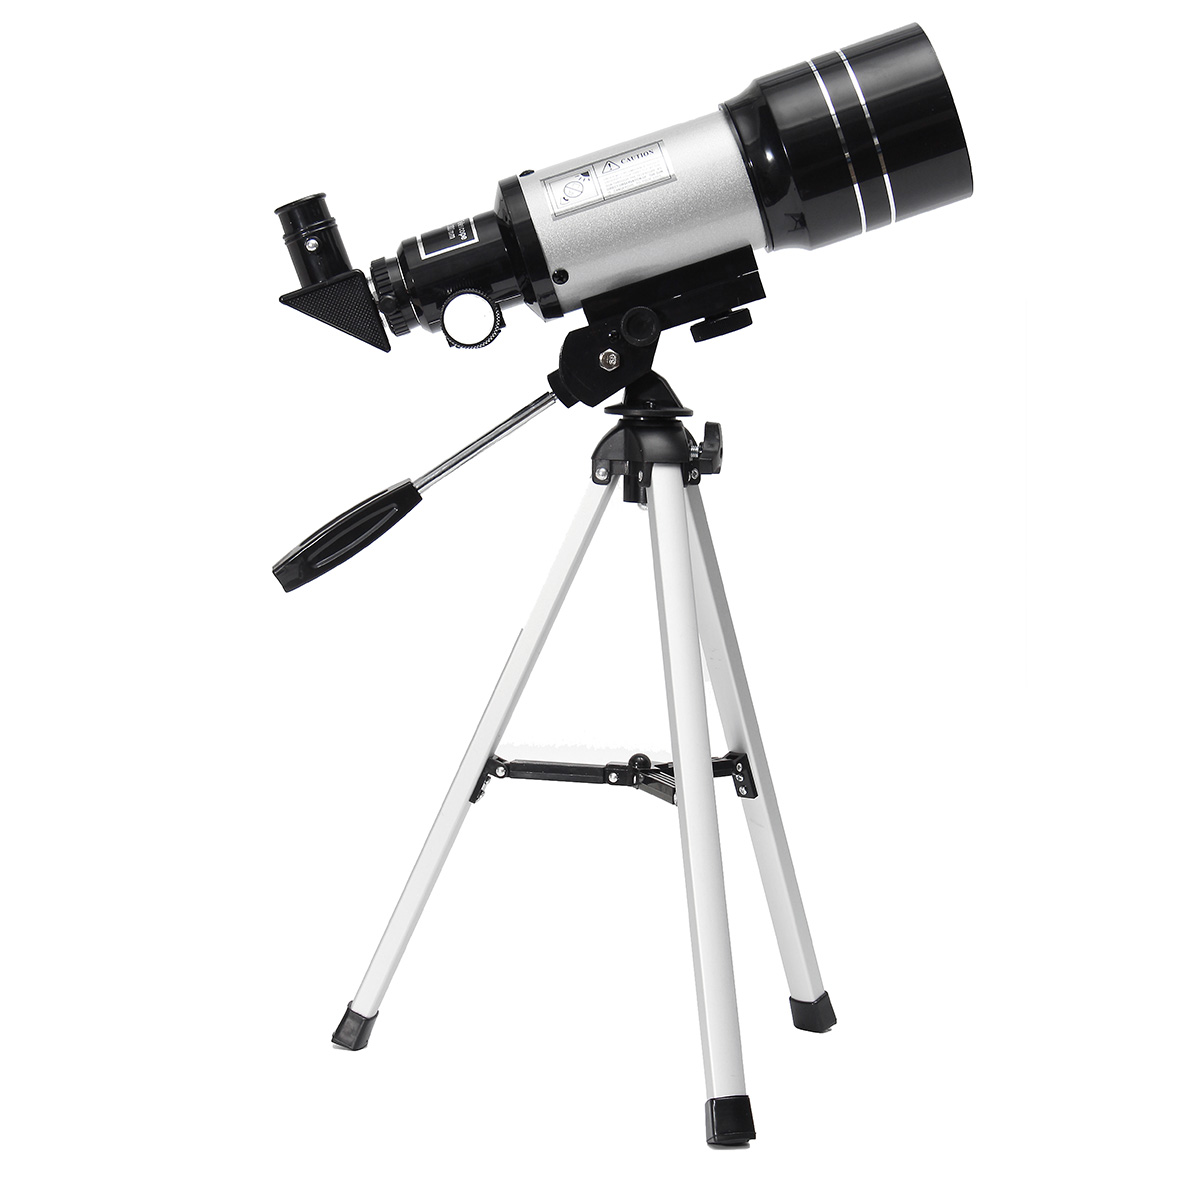 Outdoor HD Monocular Space Astronomical Telescope With Portable Aluminum Tripod Adjustable lever TeleConverter bosma 80 900 astronomical telescope monocular equatorial refractive fully coated telescope with portable tripod w2358b